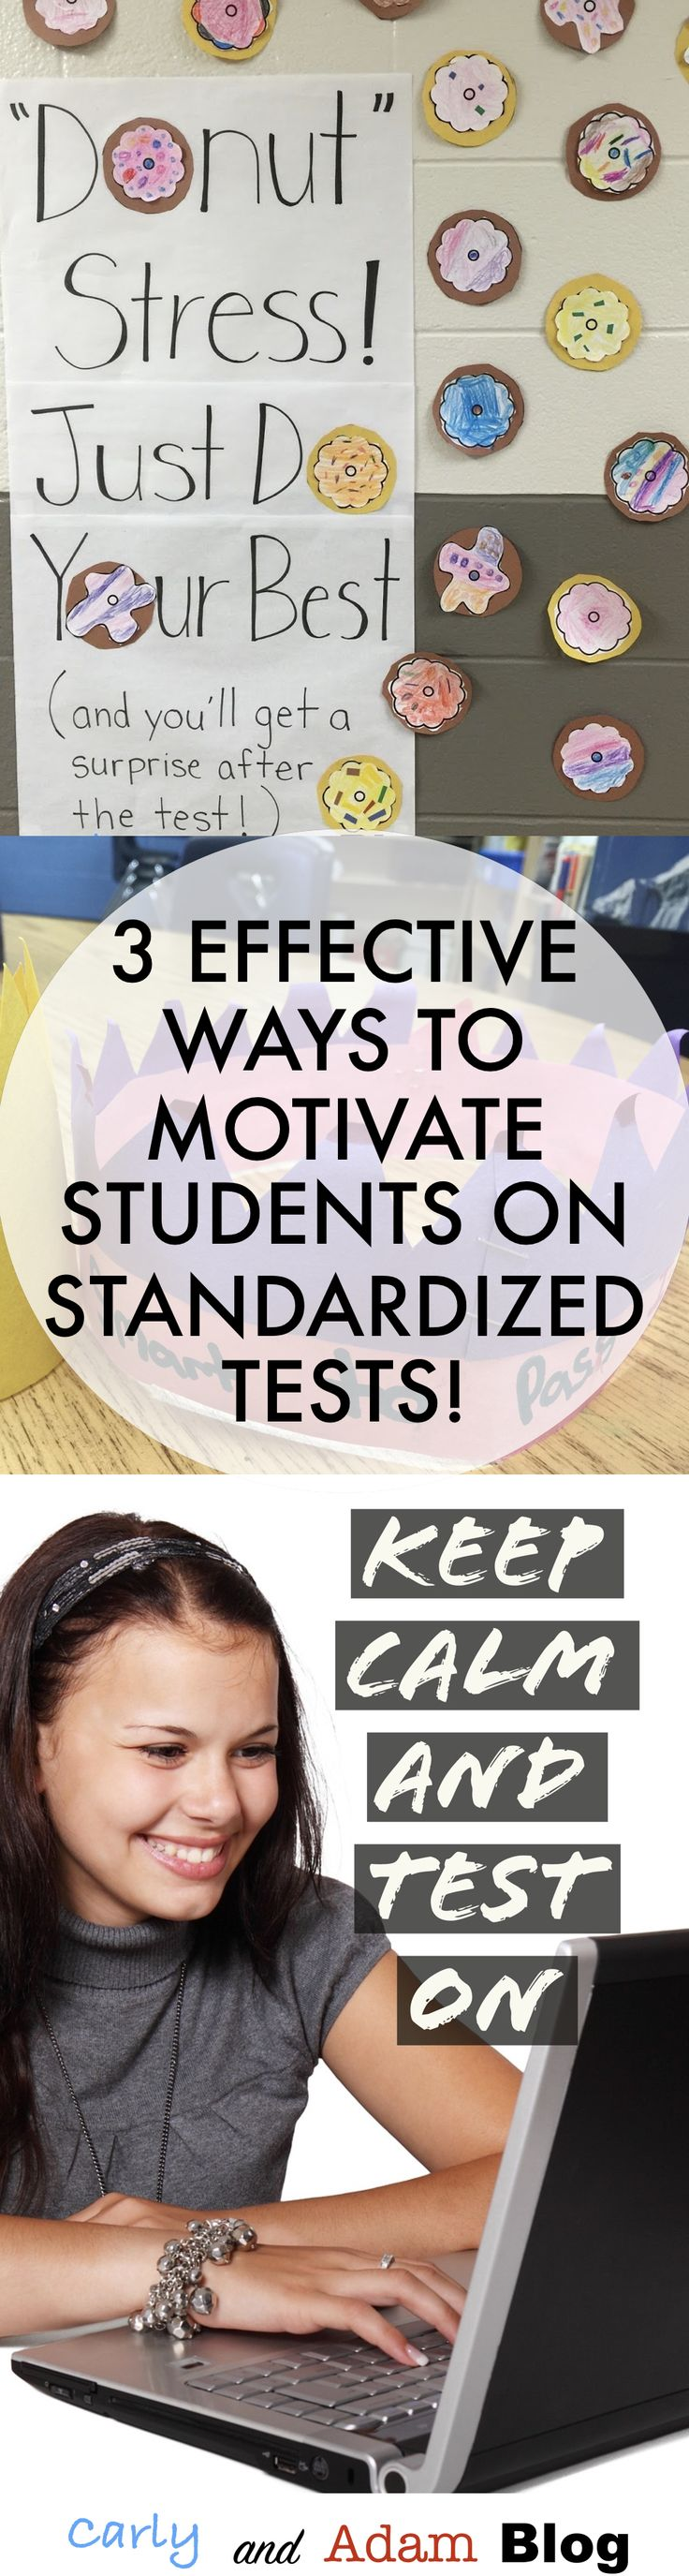 Follow these three simple steps to help you and your students Keep Calm and Test On during standardized testing season. (Three Effective Ways to Motivate Students on Standardized Tests) The Carly and Adam Blog Guest Post on the Teachers Pay Teachers Blog